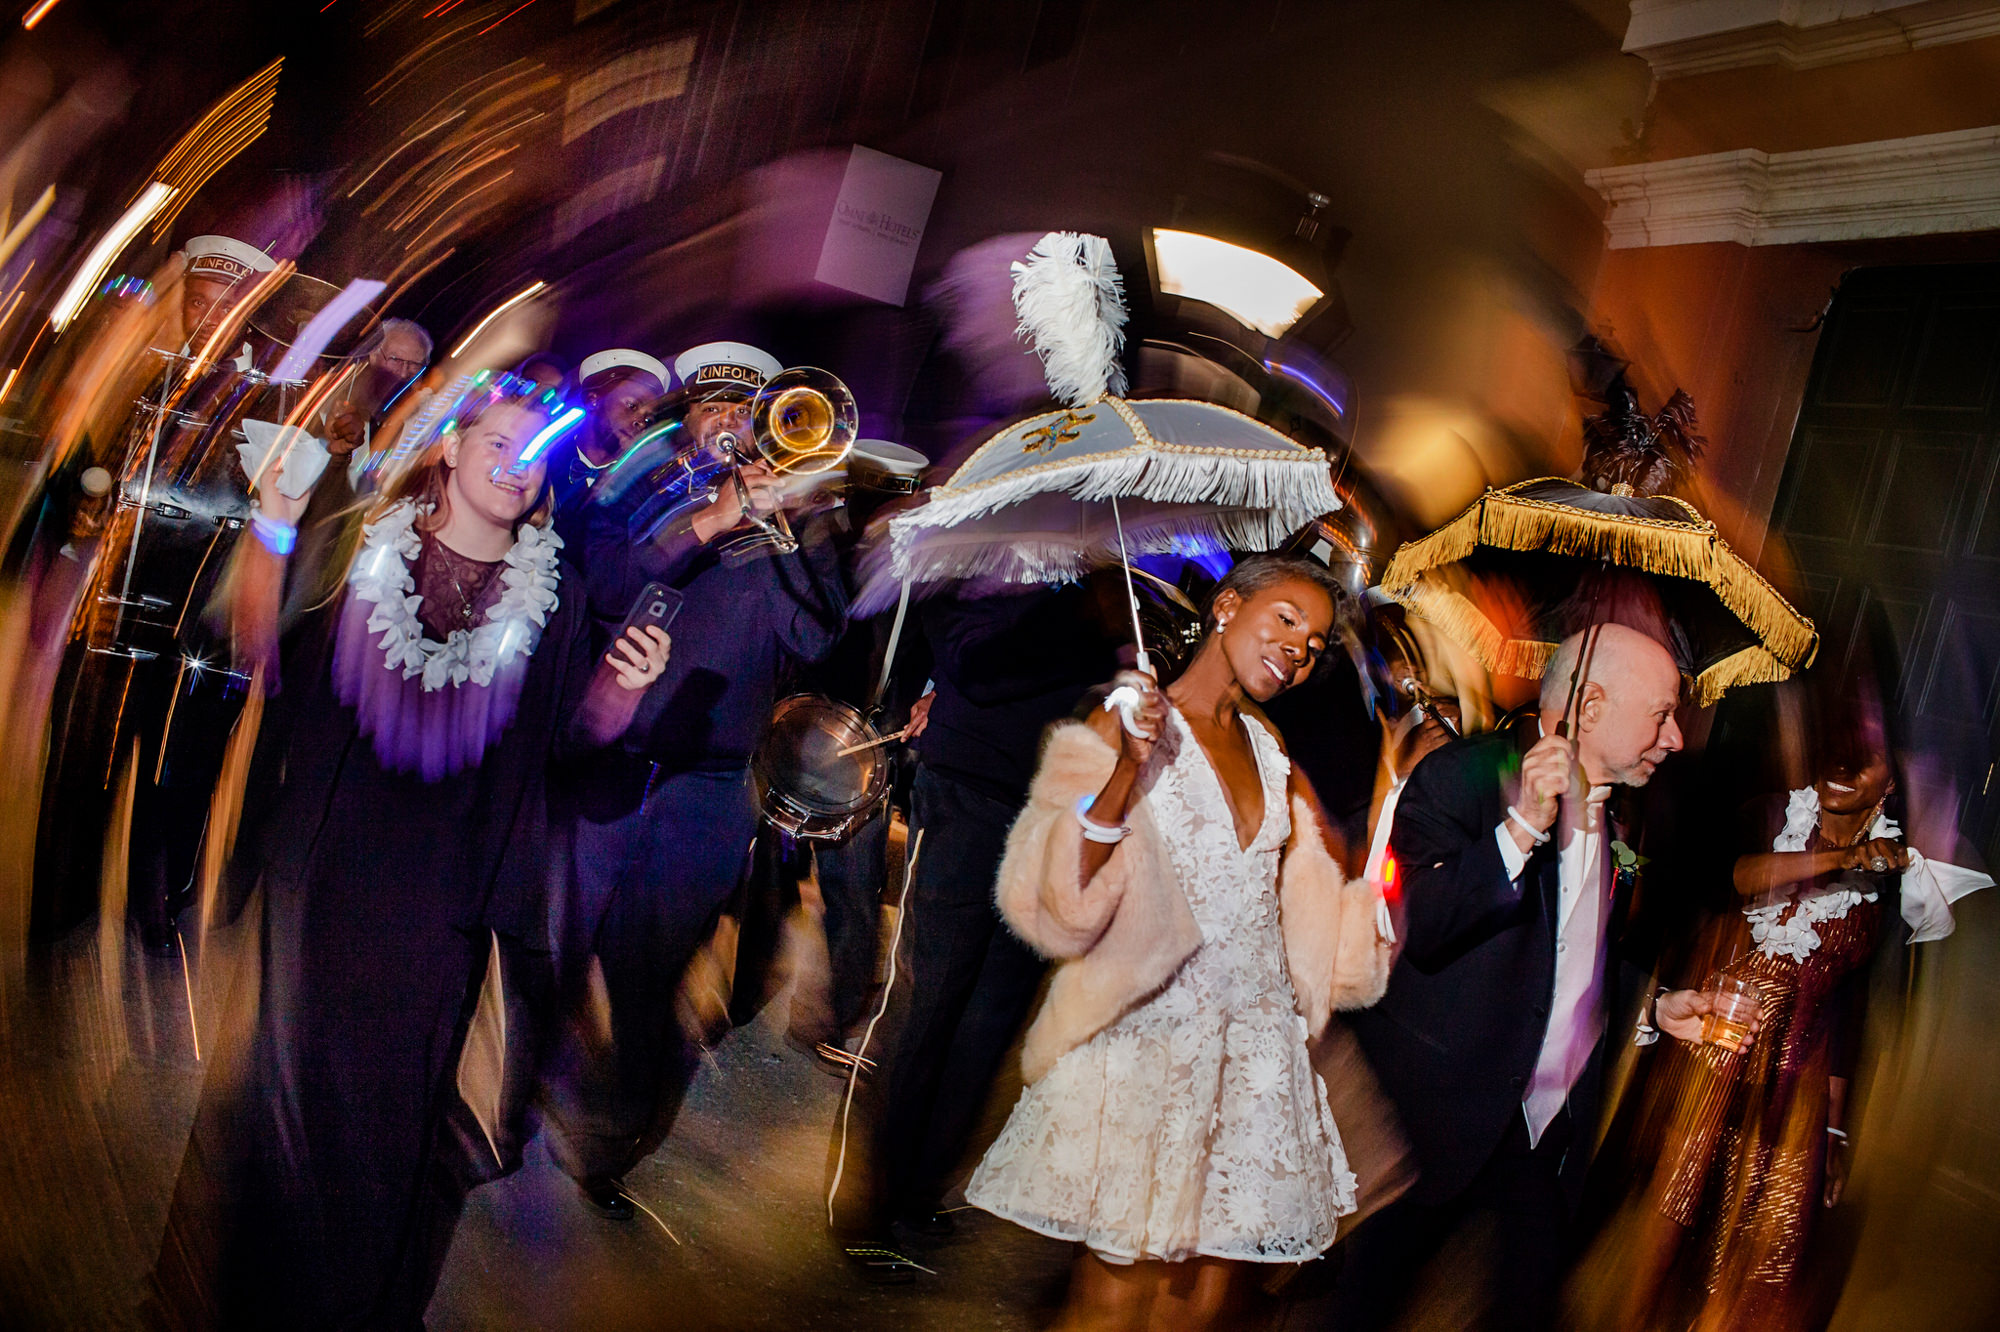 Swirling photo of bridal parade in New Orleans - photo by Chrisman Studios